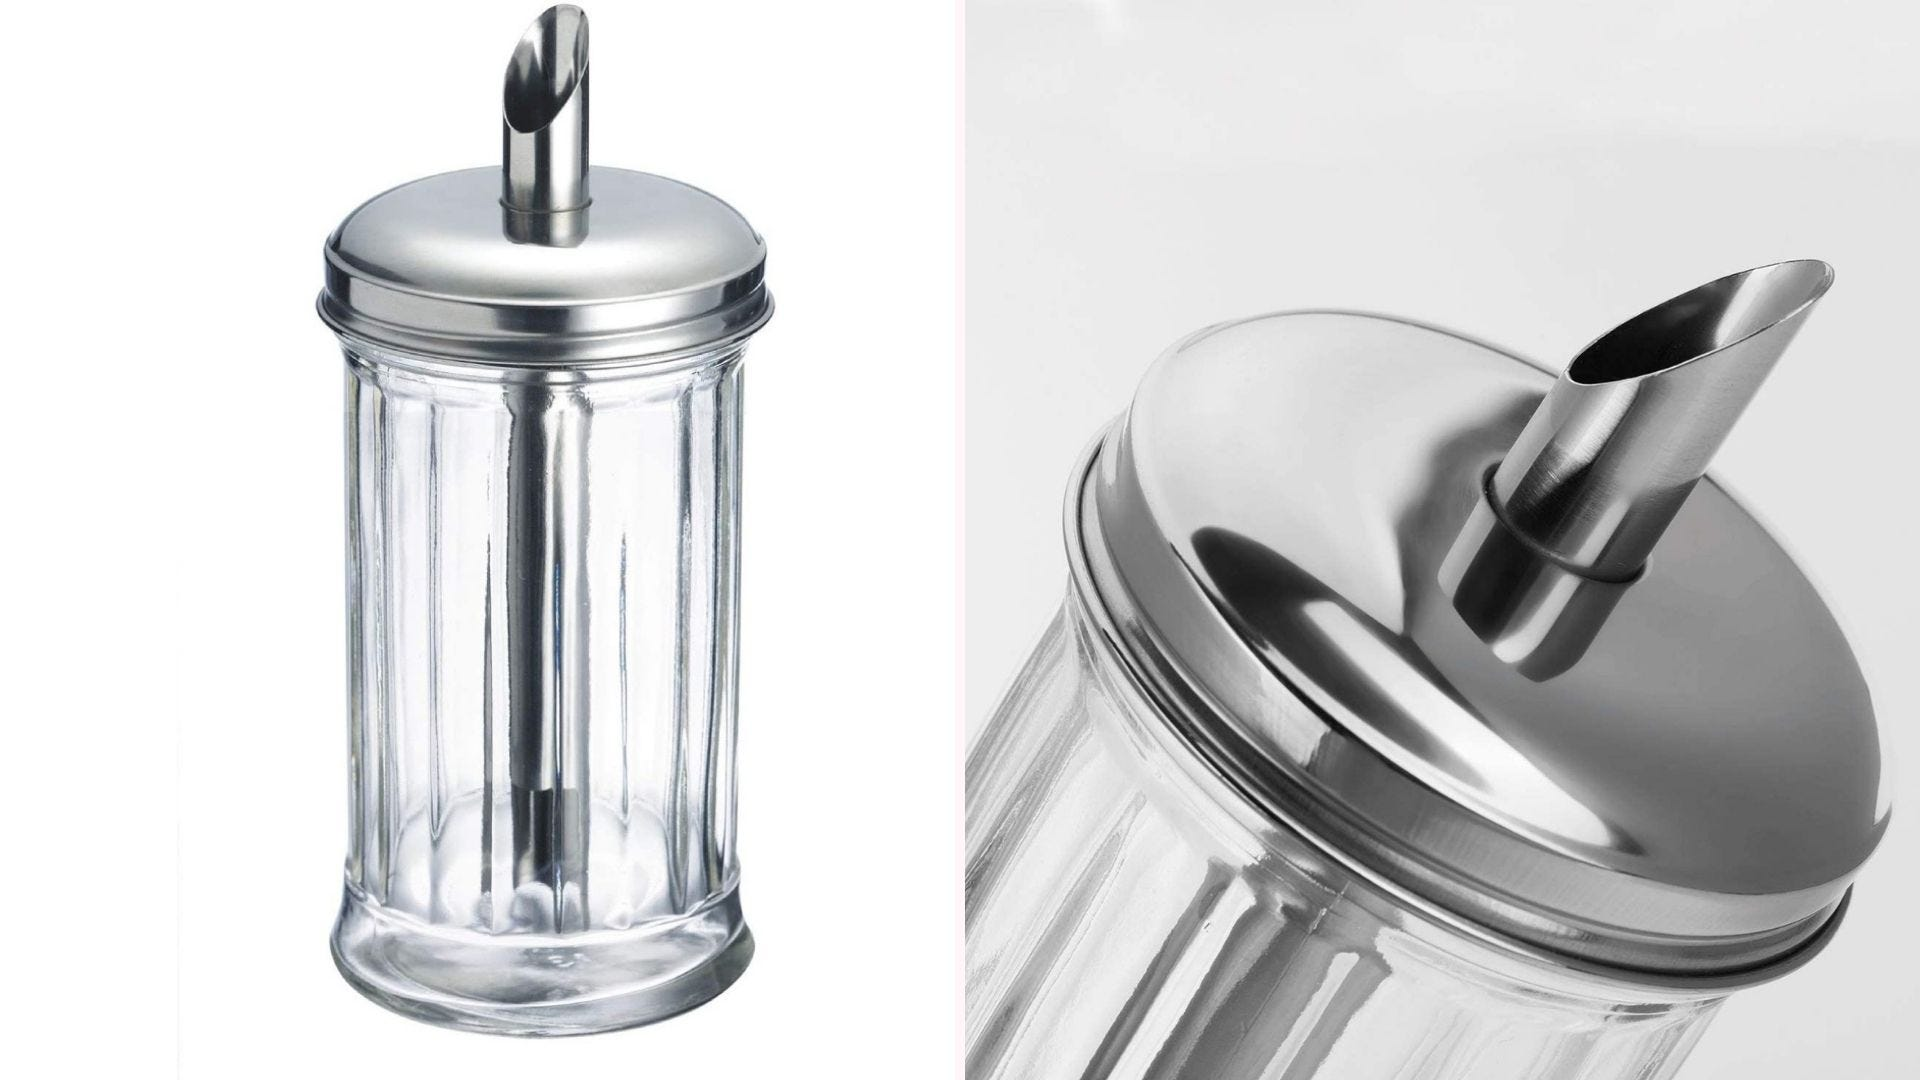 a ridged cylindrical glass sugar dispenser with a stainless steel lid and straw spout for pouring